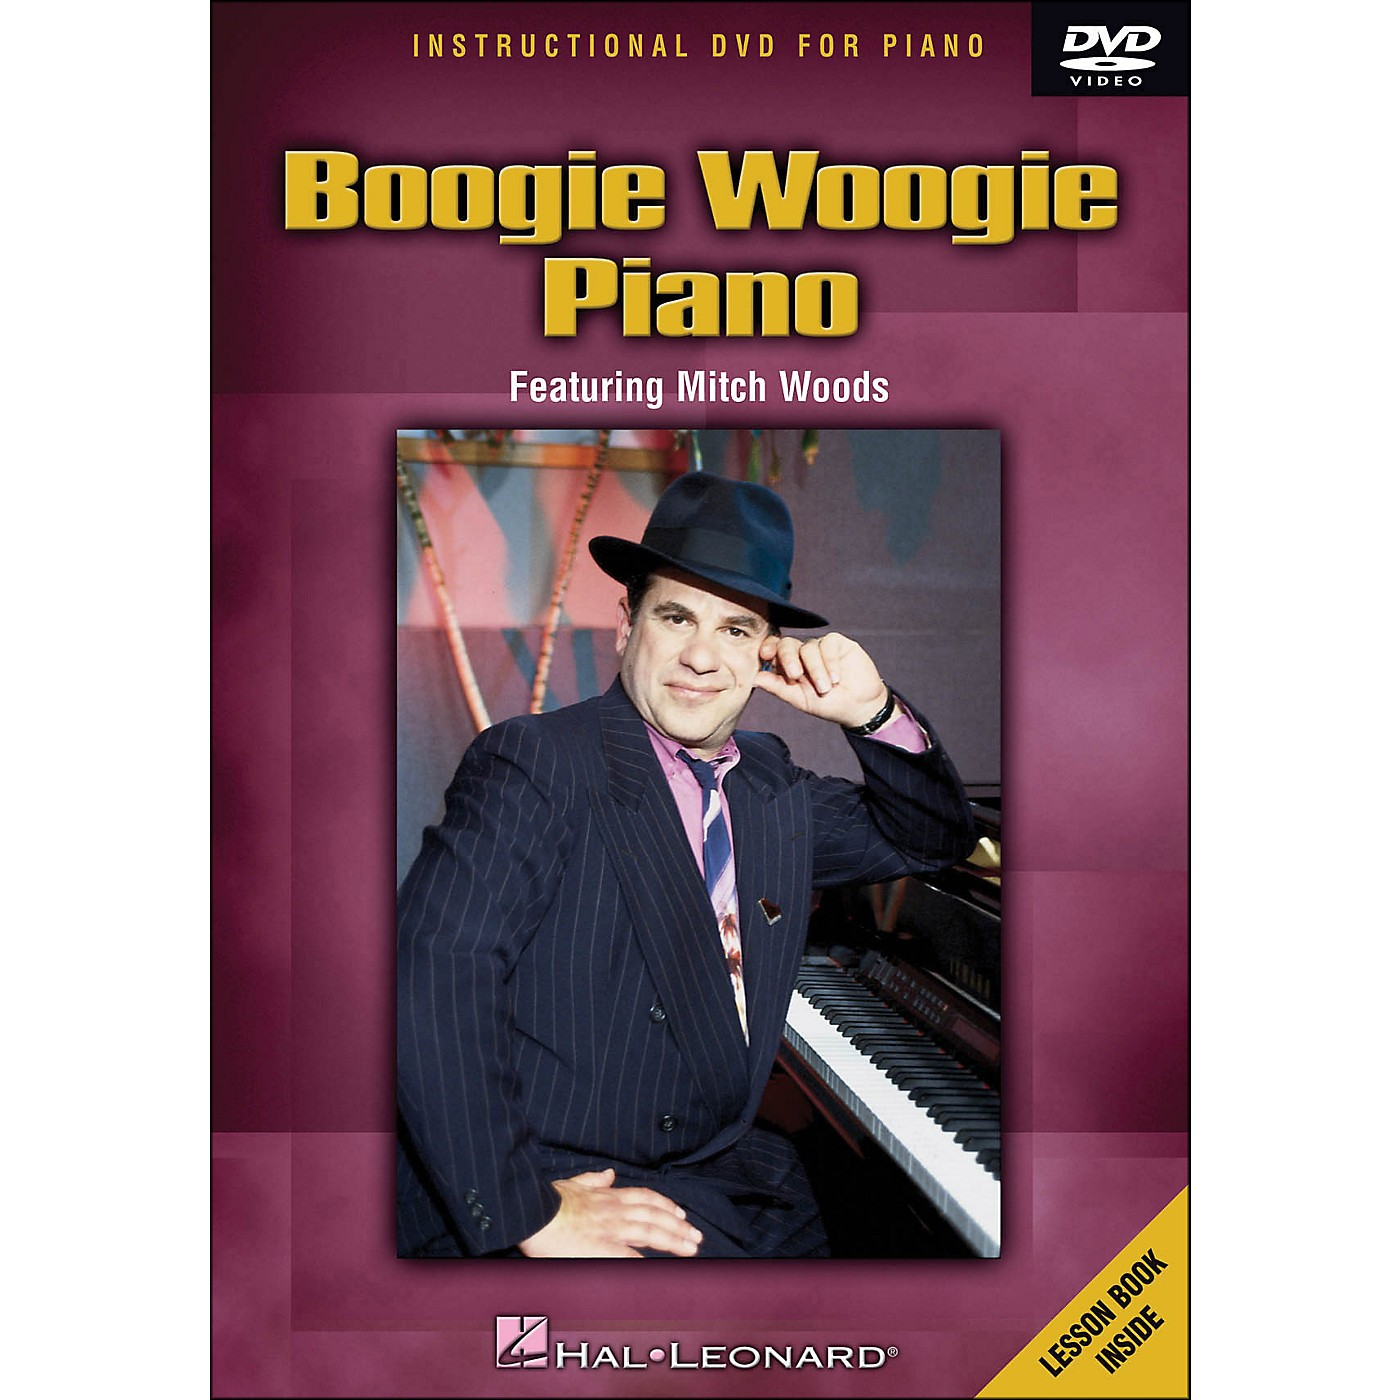 Hal Leonard Boogie Woogie Piano - DVD Featuring Mitch Woods thumbnail